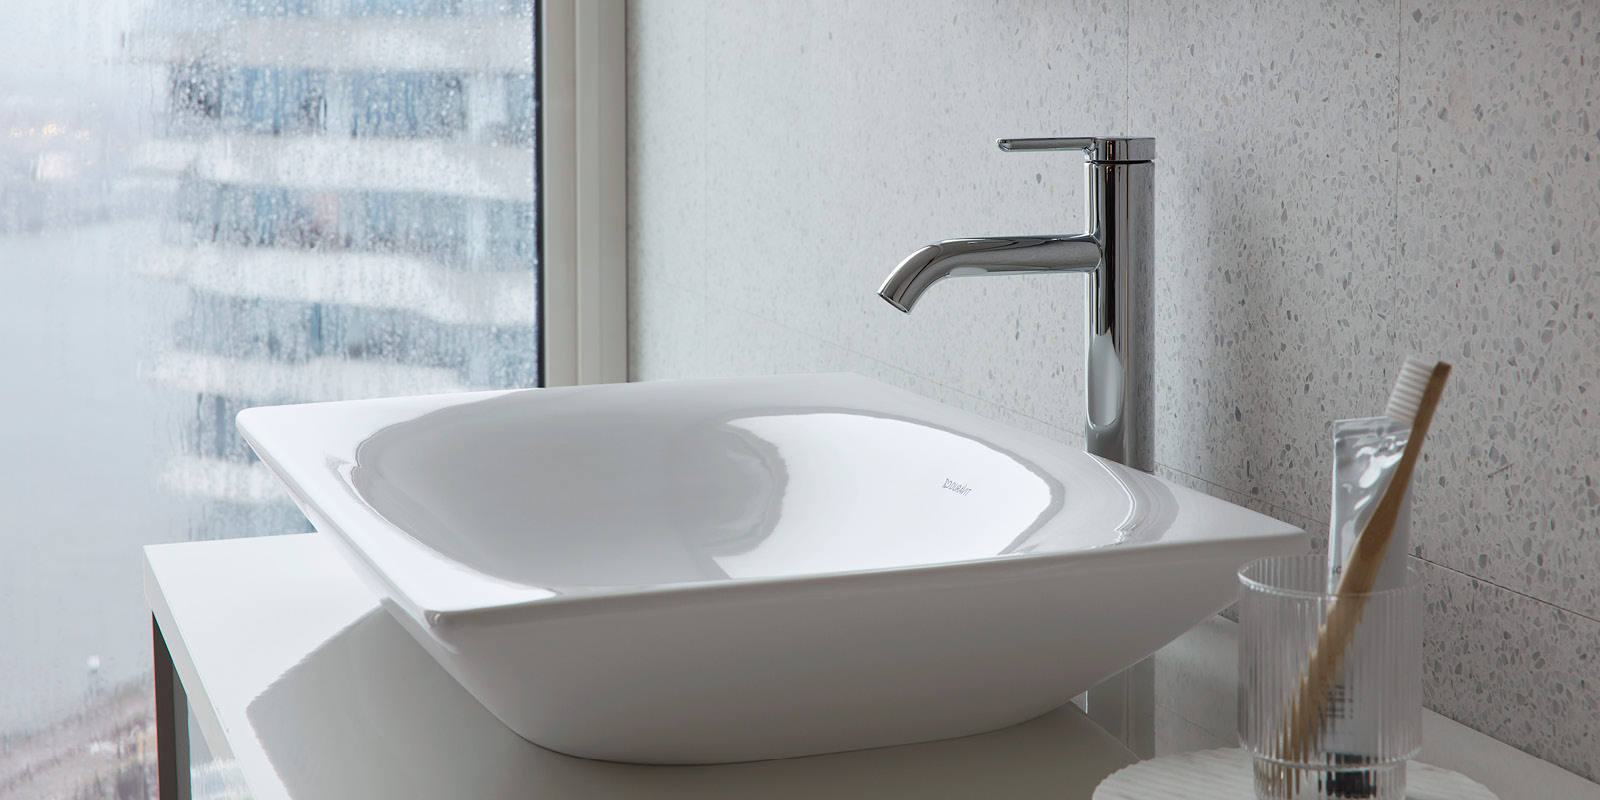 Duravit Viu Countertop Washbasin at xTWOstore